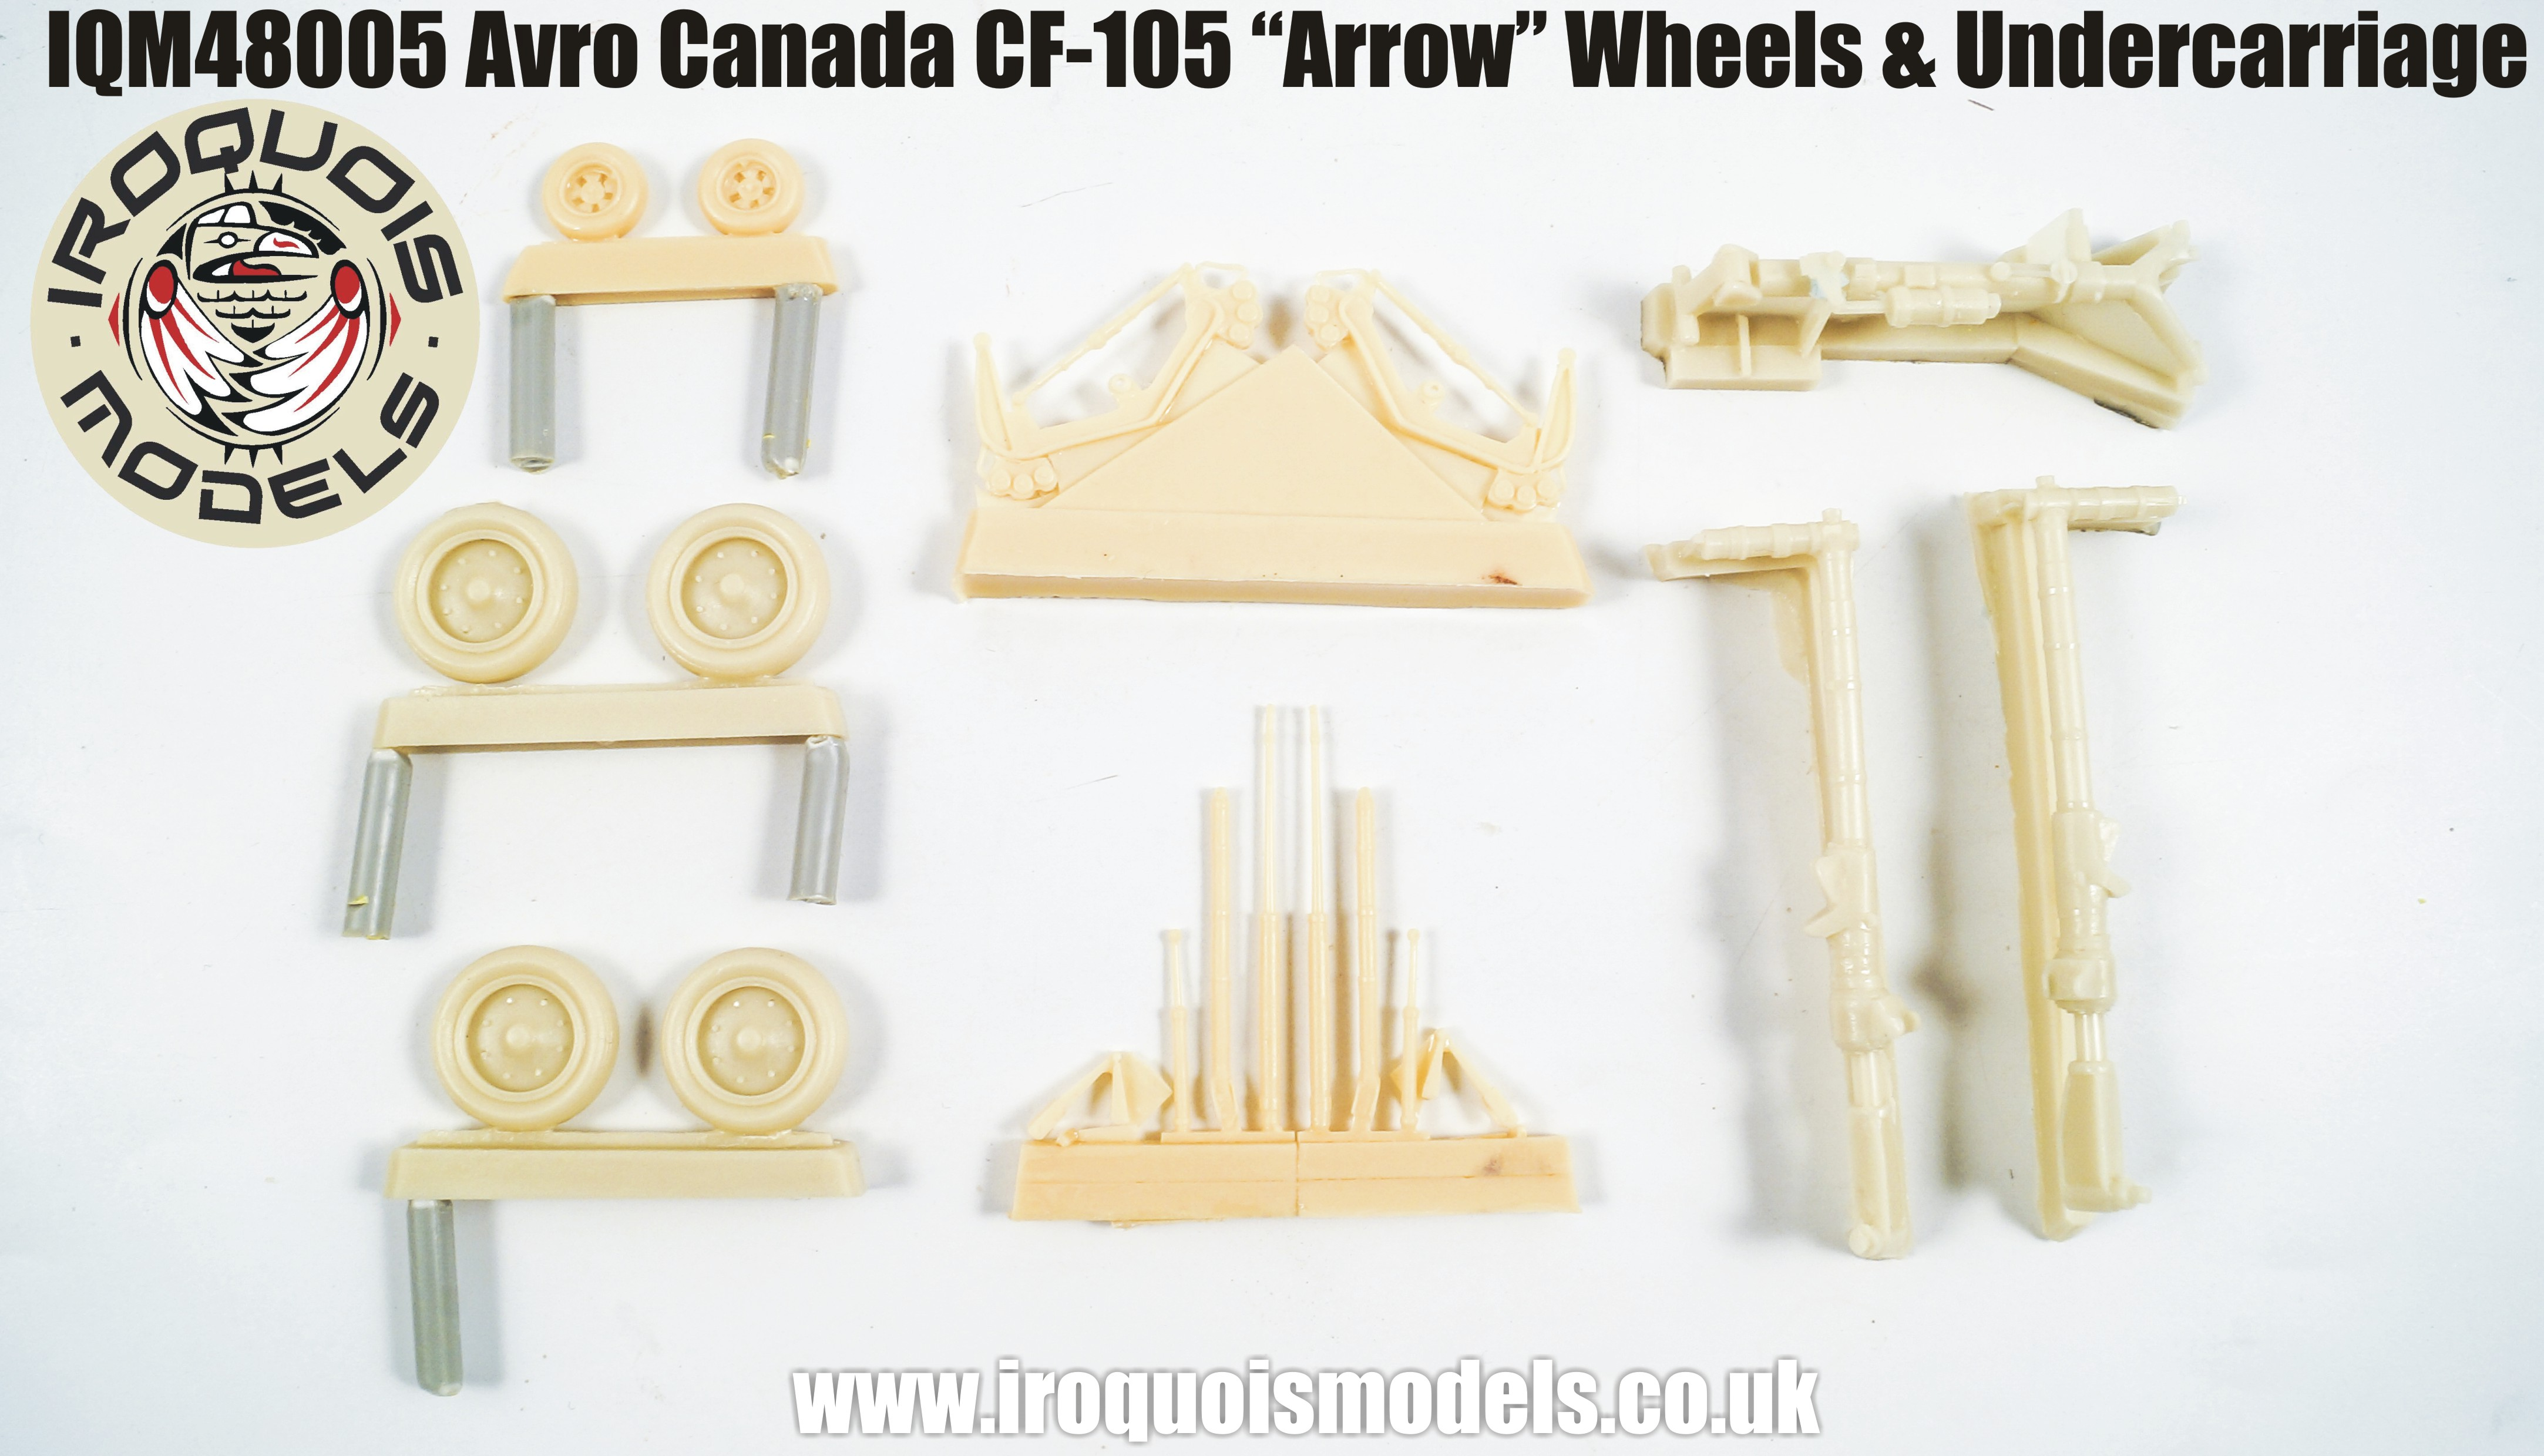 IQM48005 Avro-Canada CF-105 Avro Arrow wheels and undercarriage set